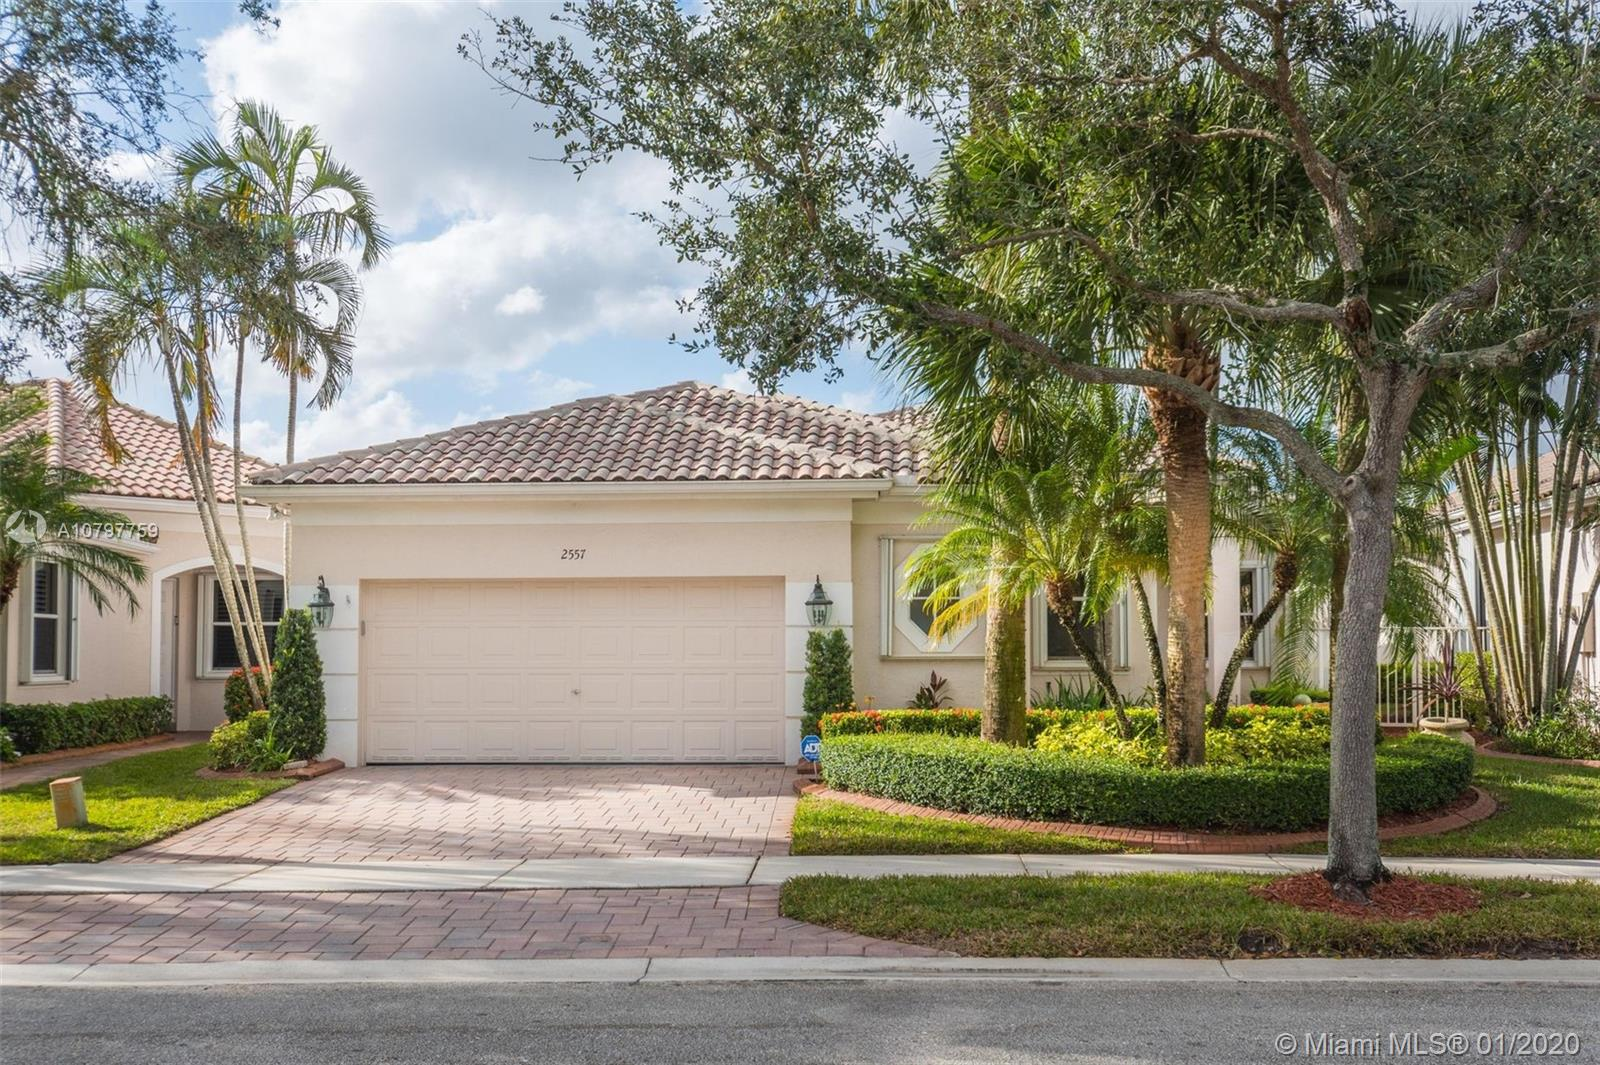 This spacious 3 bed/ 3 bath waterfront home in Bay Pointe - Weston Hills CC has it all. 3 bedroom is used as an office. Open floor plan with 14' ceilings. Custom kitchen with stainless steel appliances, granite counter tops, built-in bar w/ fridge, under cabinet lighting and more. Tile in the common area and porcelain wood-like tile in the bedrooms. Master bath has been completely updated with Maxx tub, walk-in shower with frameless glass, and his/her vanities. Plantation shutters. LED lighting. Enjoy incredible sunset views from your over-sized screened patio with large backyard (room for a pool). Accordian shutters throughout. 2-car garage. Fully maintained community including lawn/landscaping, fertilization, pressure cleaning & painting.